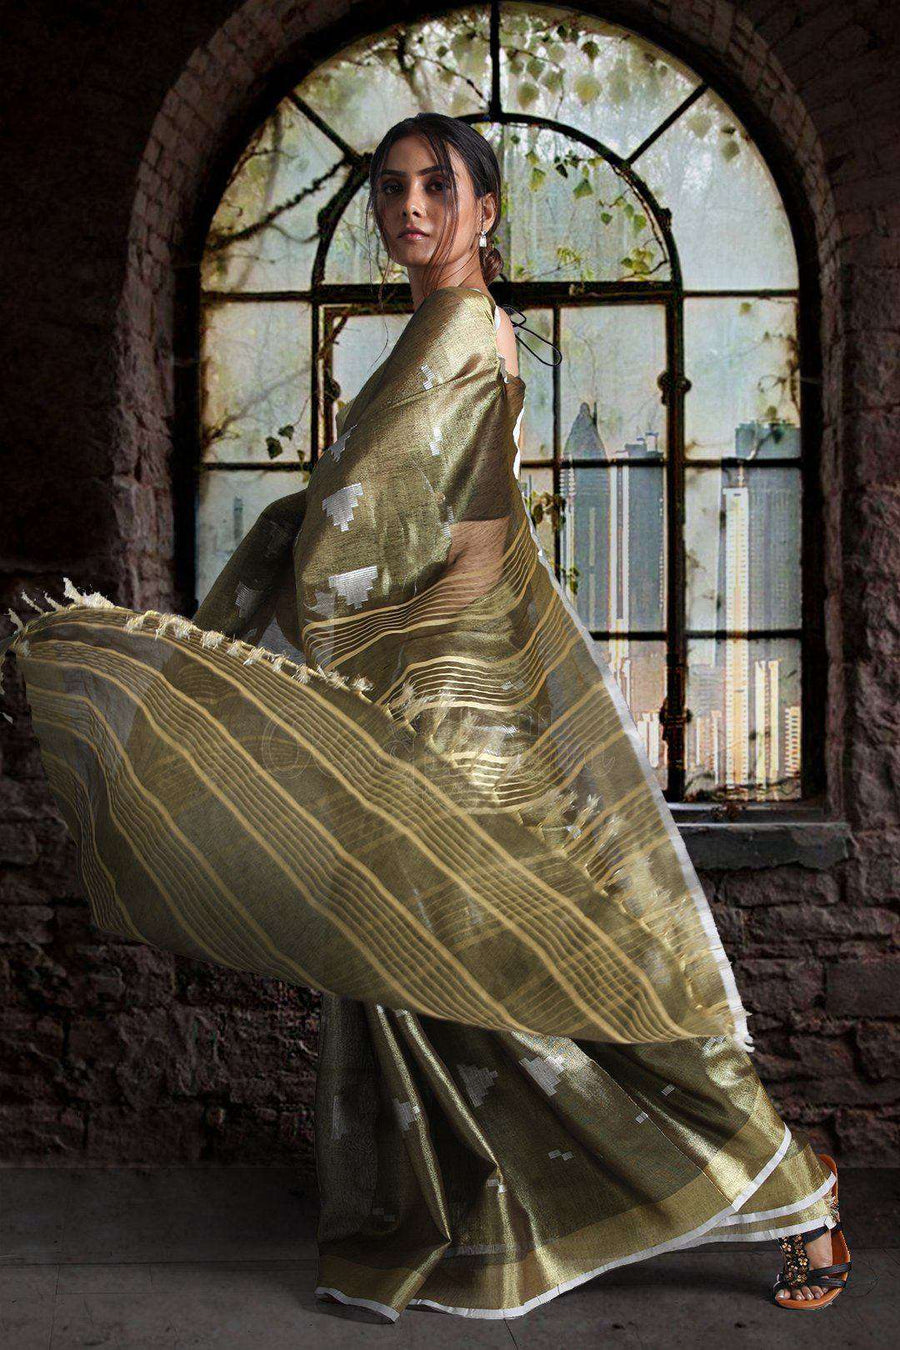 Metallic Green Dualtone Tissue Linen Saree With Woven Designs Earthen Collection Roopkatha - A Story of Art